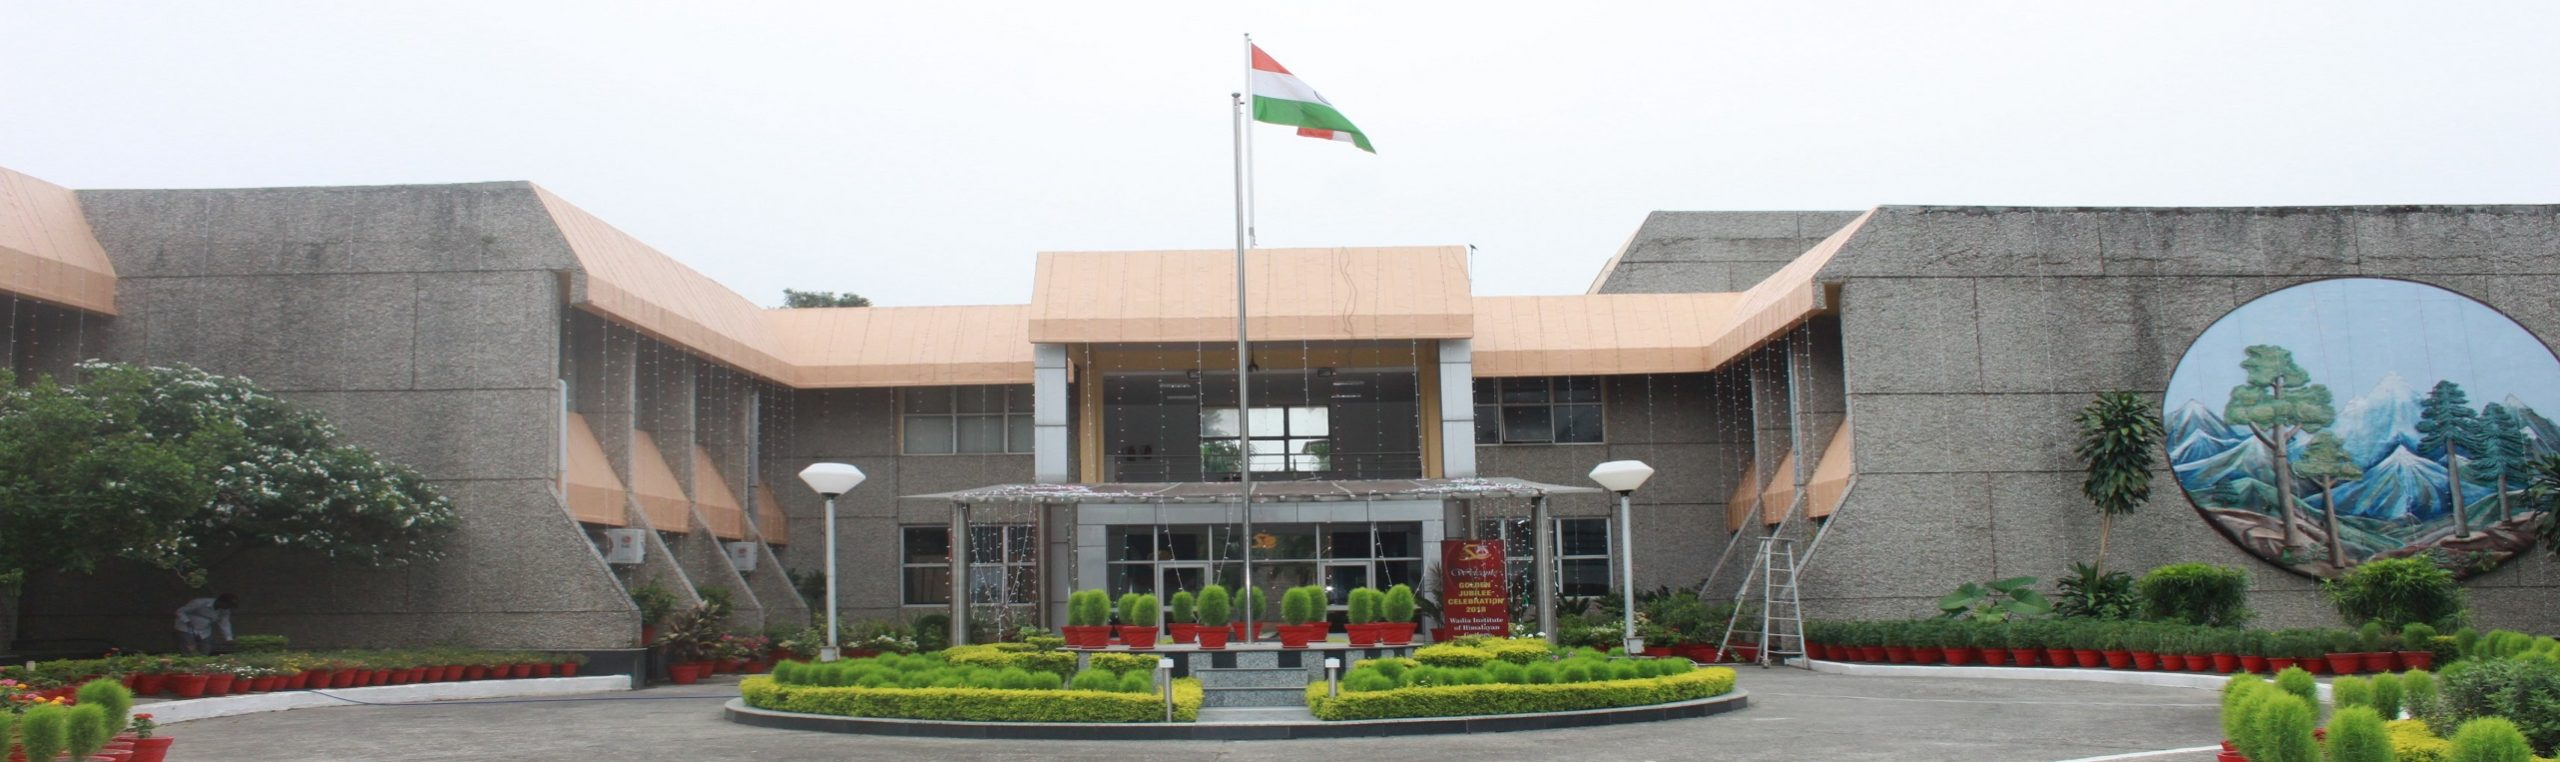 42nd Annual Convention, Seminar and Exhibition on Exploration Geophysics